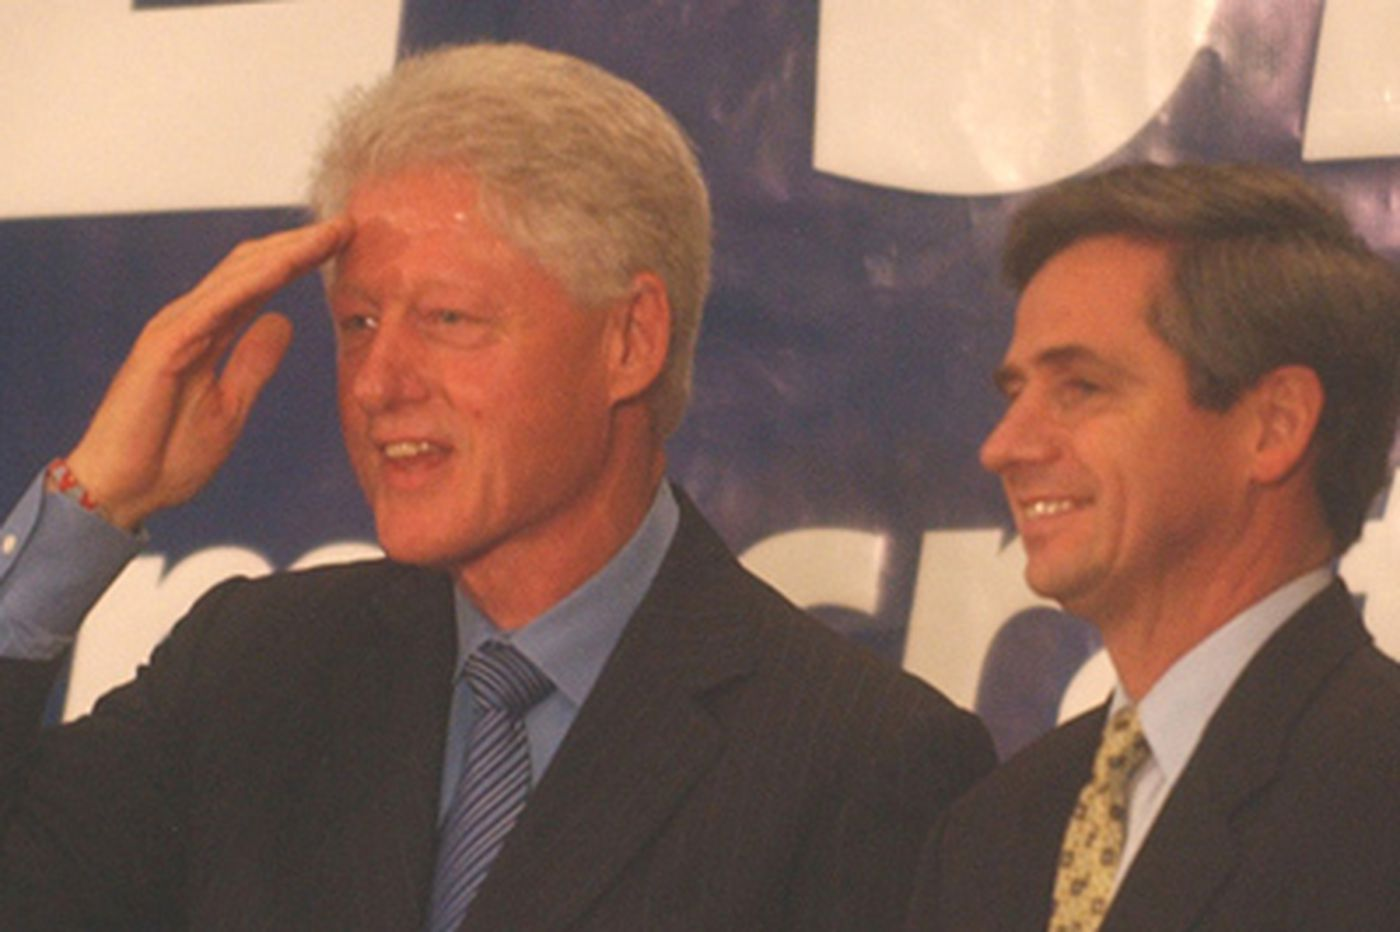 Clinton approached Sestak on behalf of White House